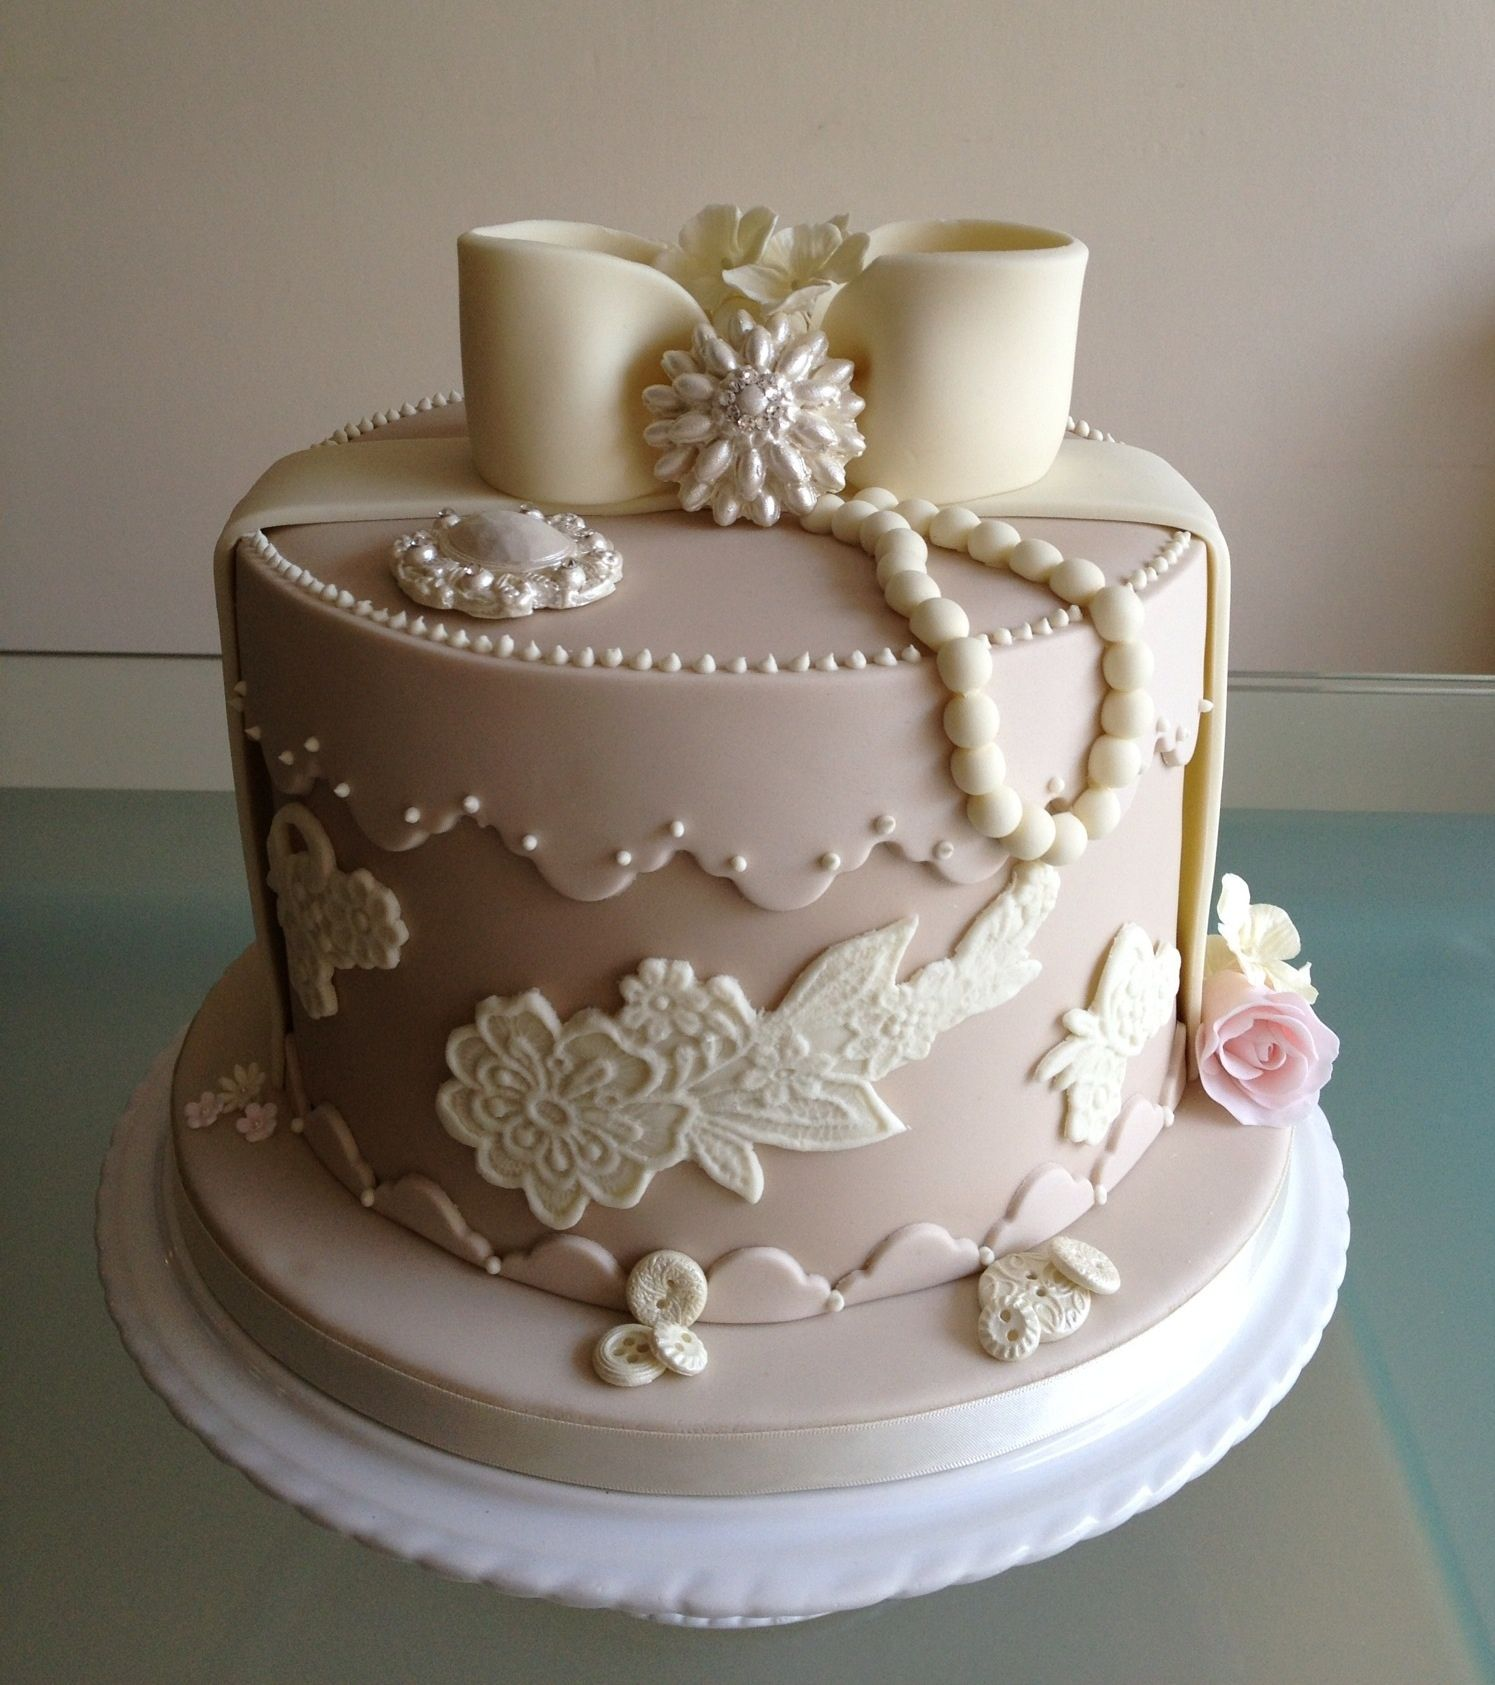 Pin By Irene Slutzky On Beautiful Cakes In